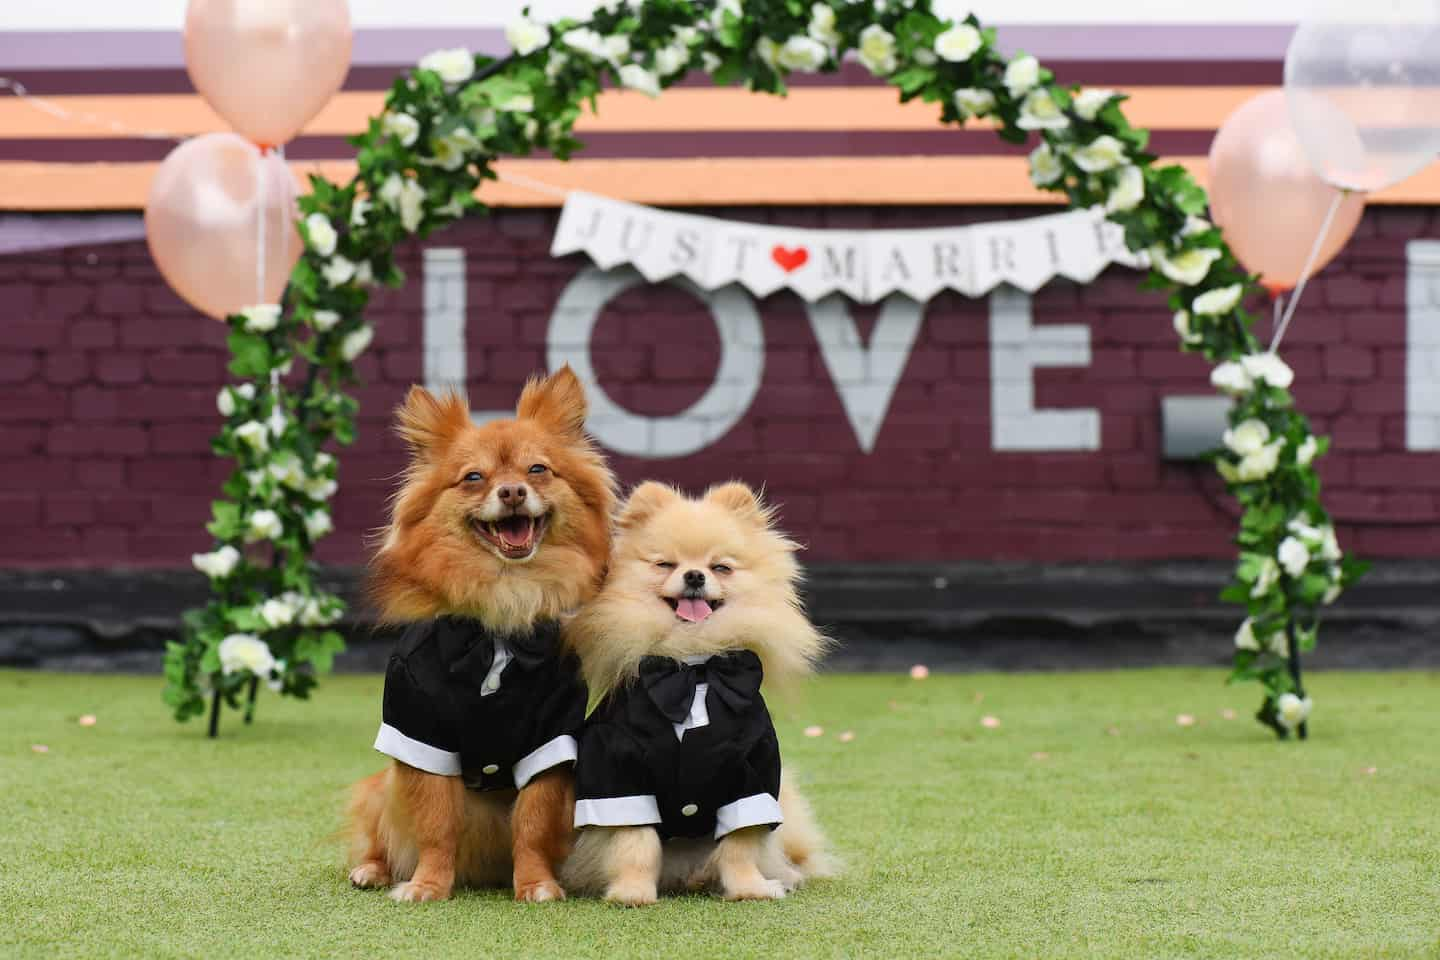 London Dog Wedding At The Rooftop Film Club Wooftop Wedding Service 5